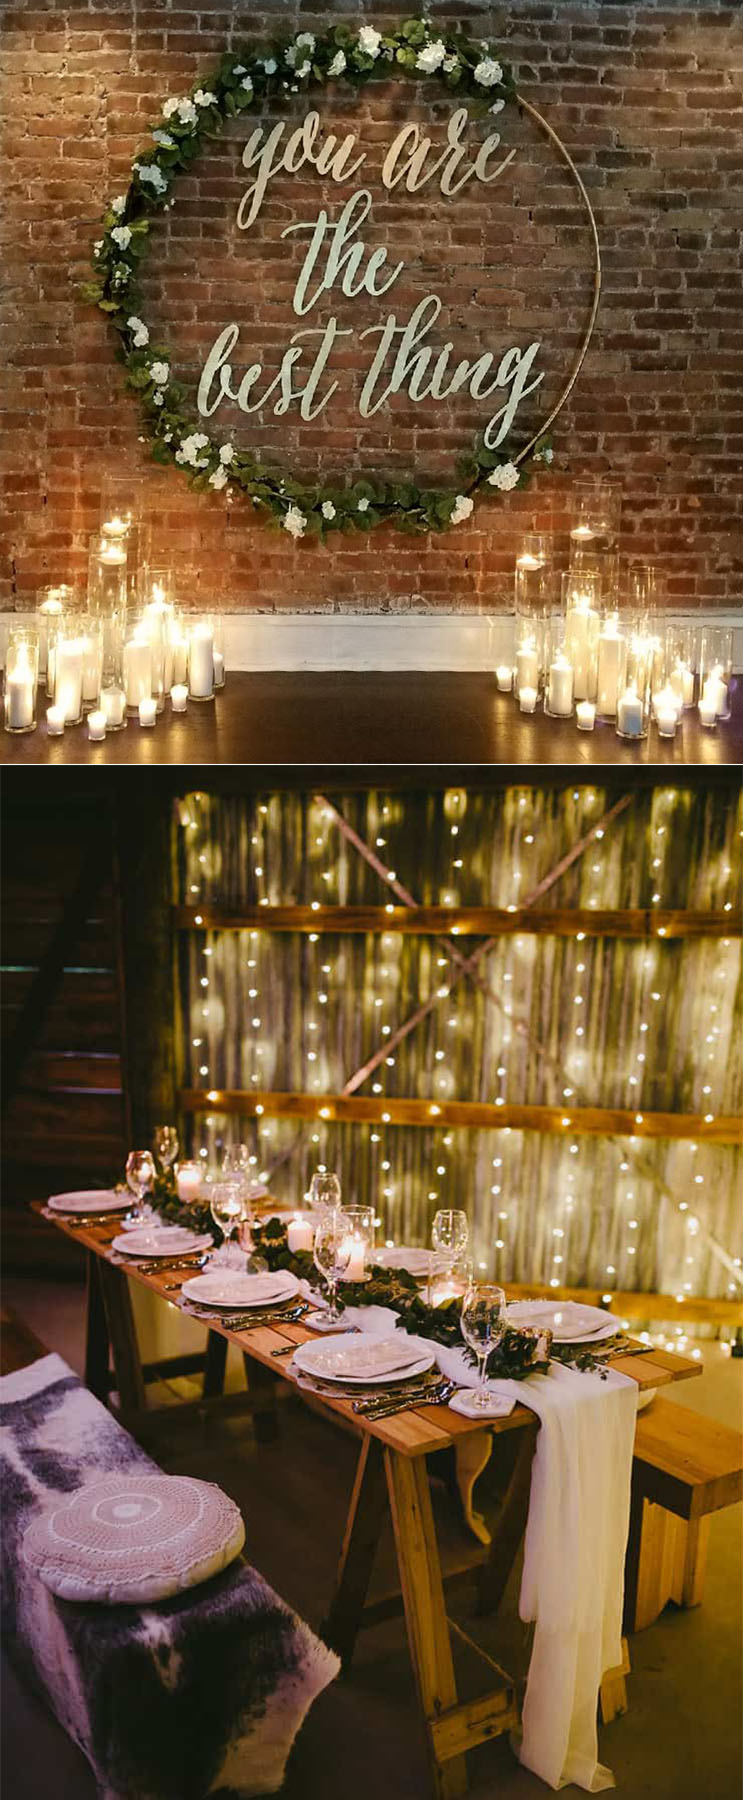 white and grenery evening wedding ideas under romantic lights